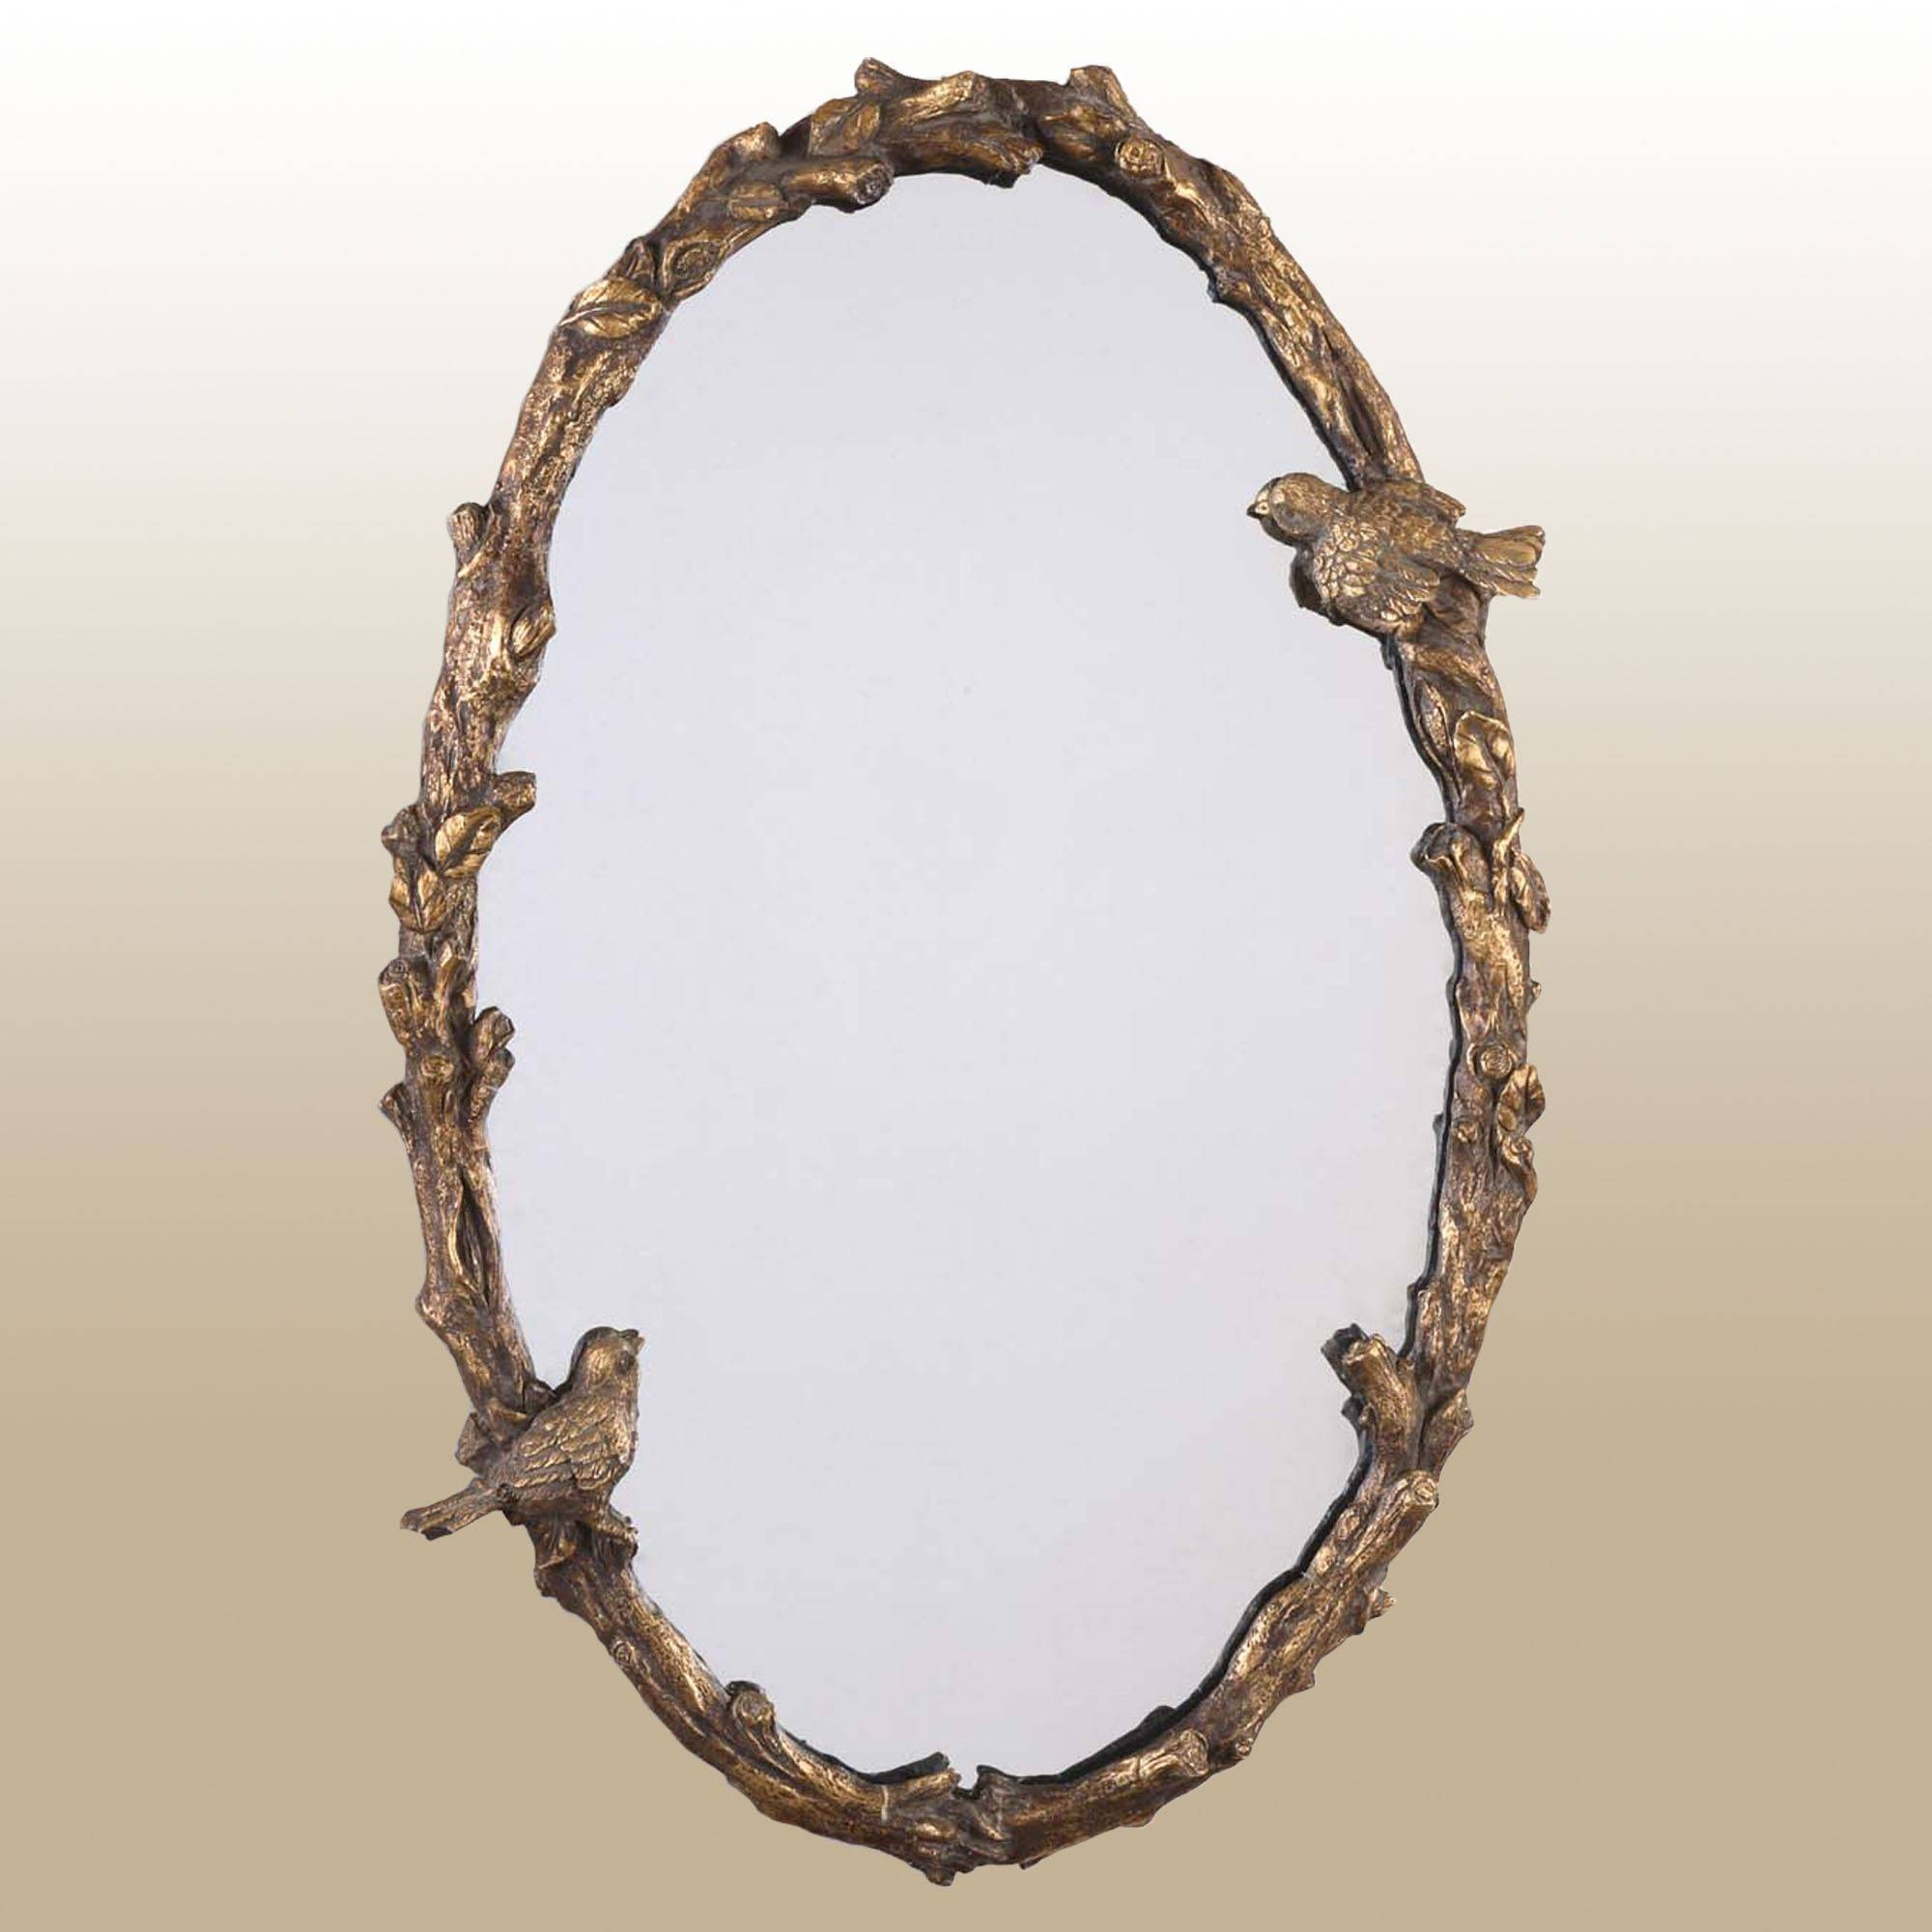 Elegant Birds Oval Wall Mirror Pertaining To Gold Wall Mirrors (View 13 of 15)